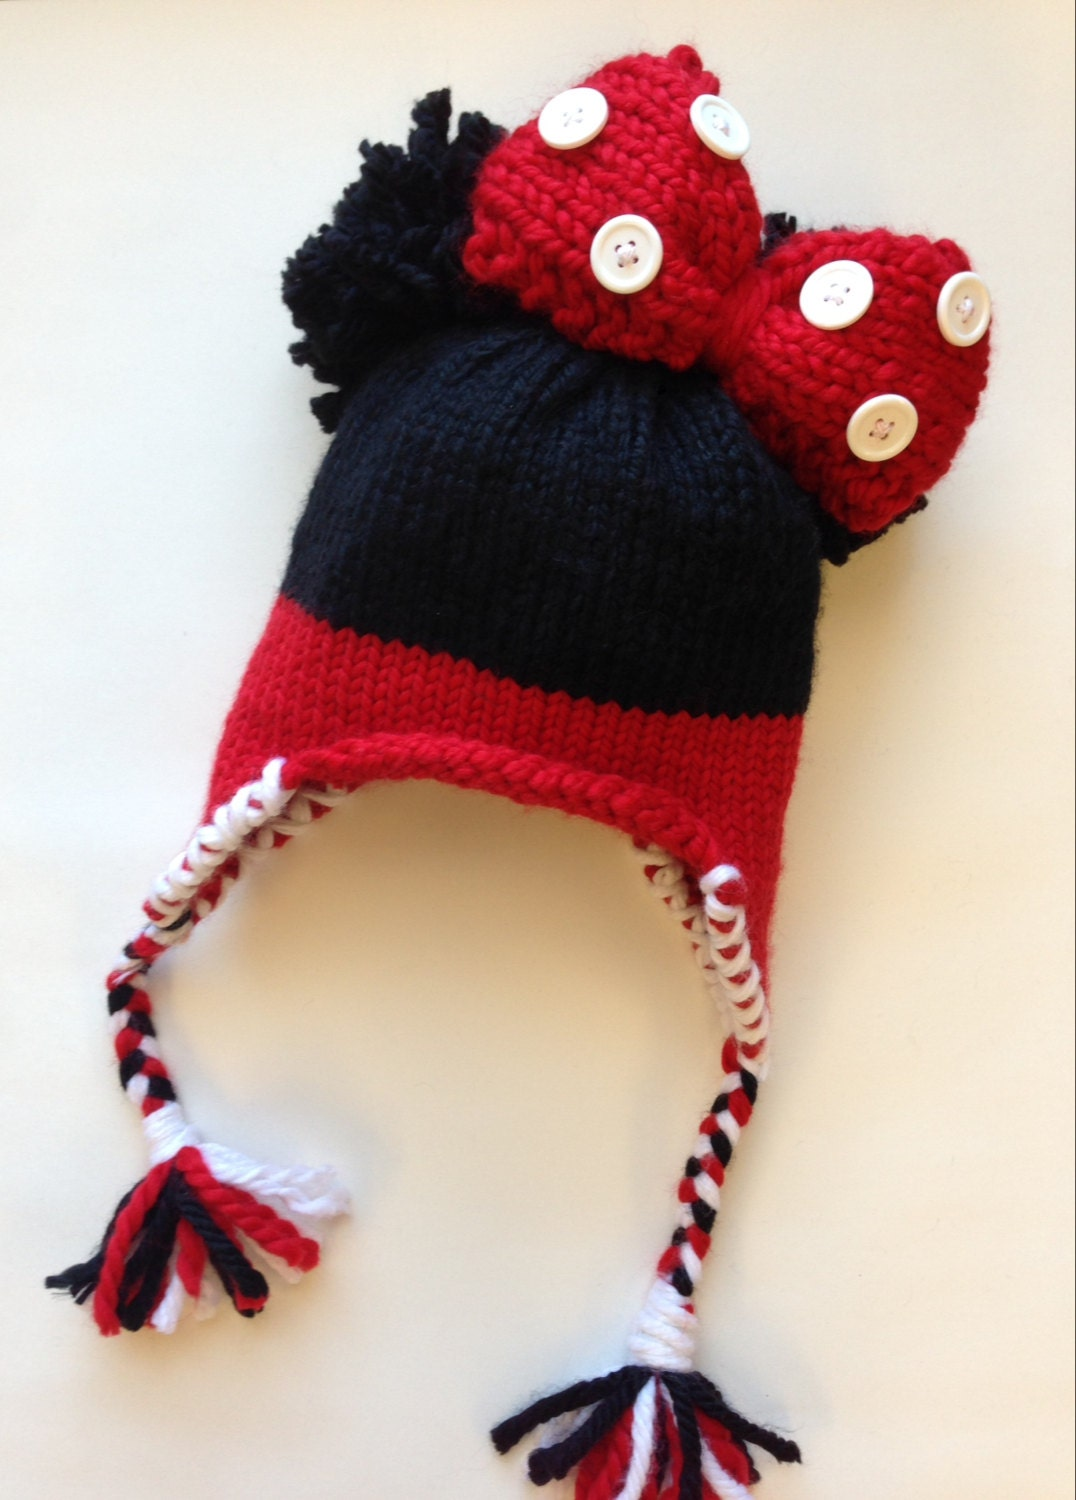 Knitted Minnie Mouse Hat Pattern : Minnie Mouse Knitted Hat Pattern for Beginners